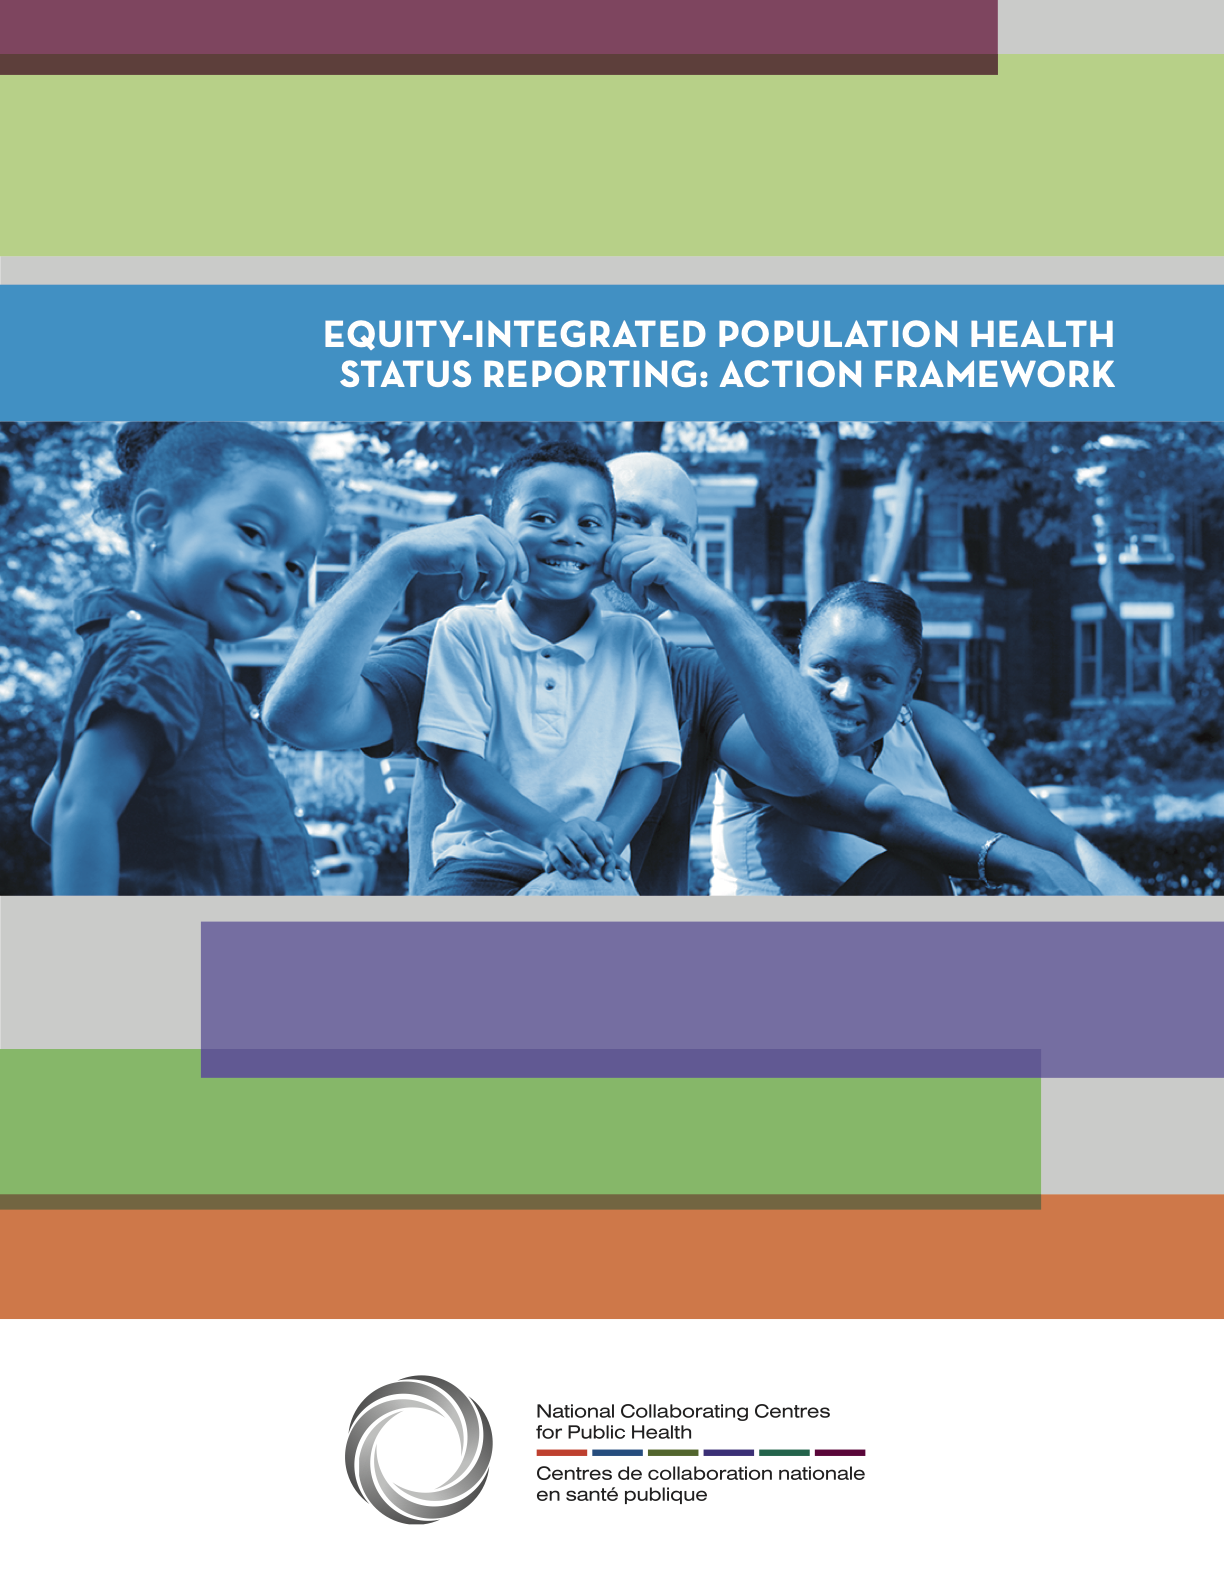 Equity-Integrated Population Health Status Reporting: Action Framework